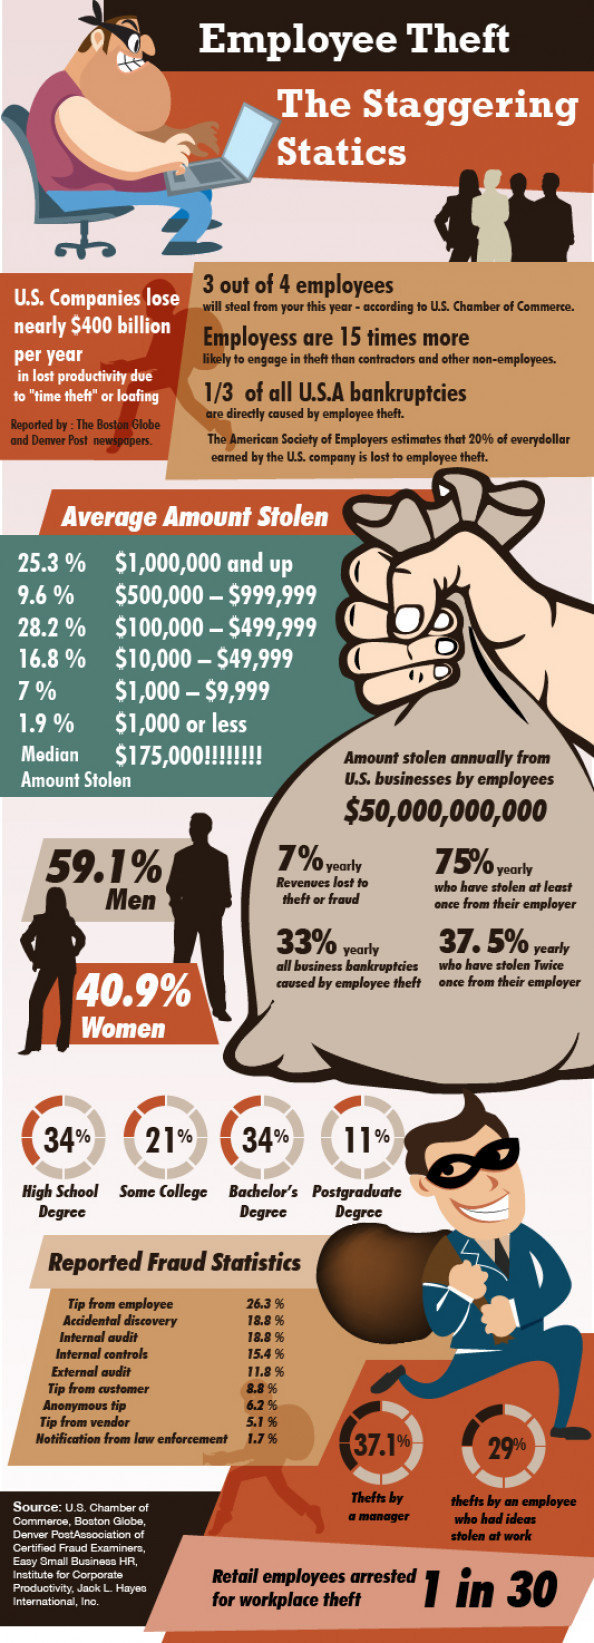 Employee Theft Infographic